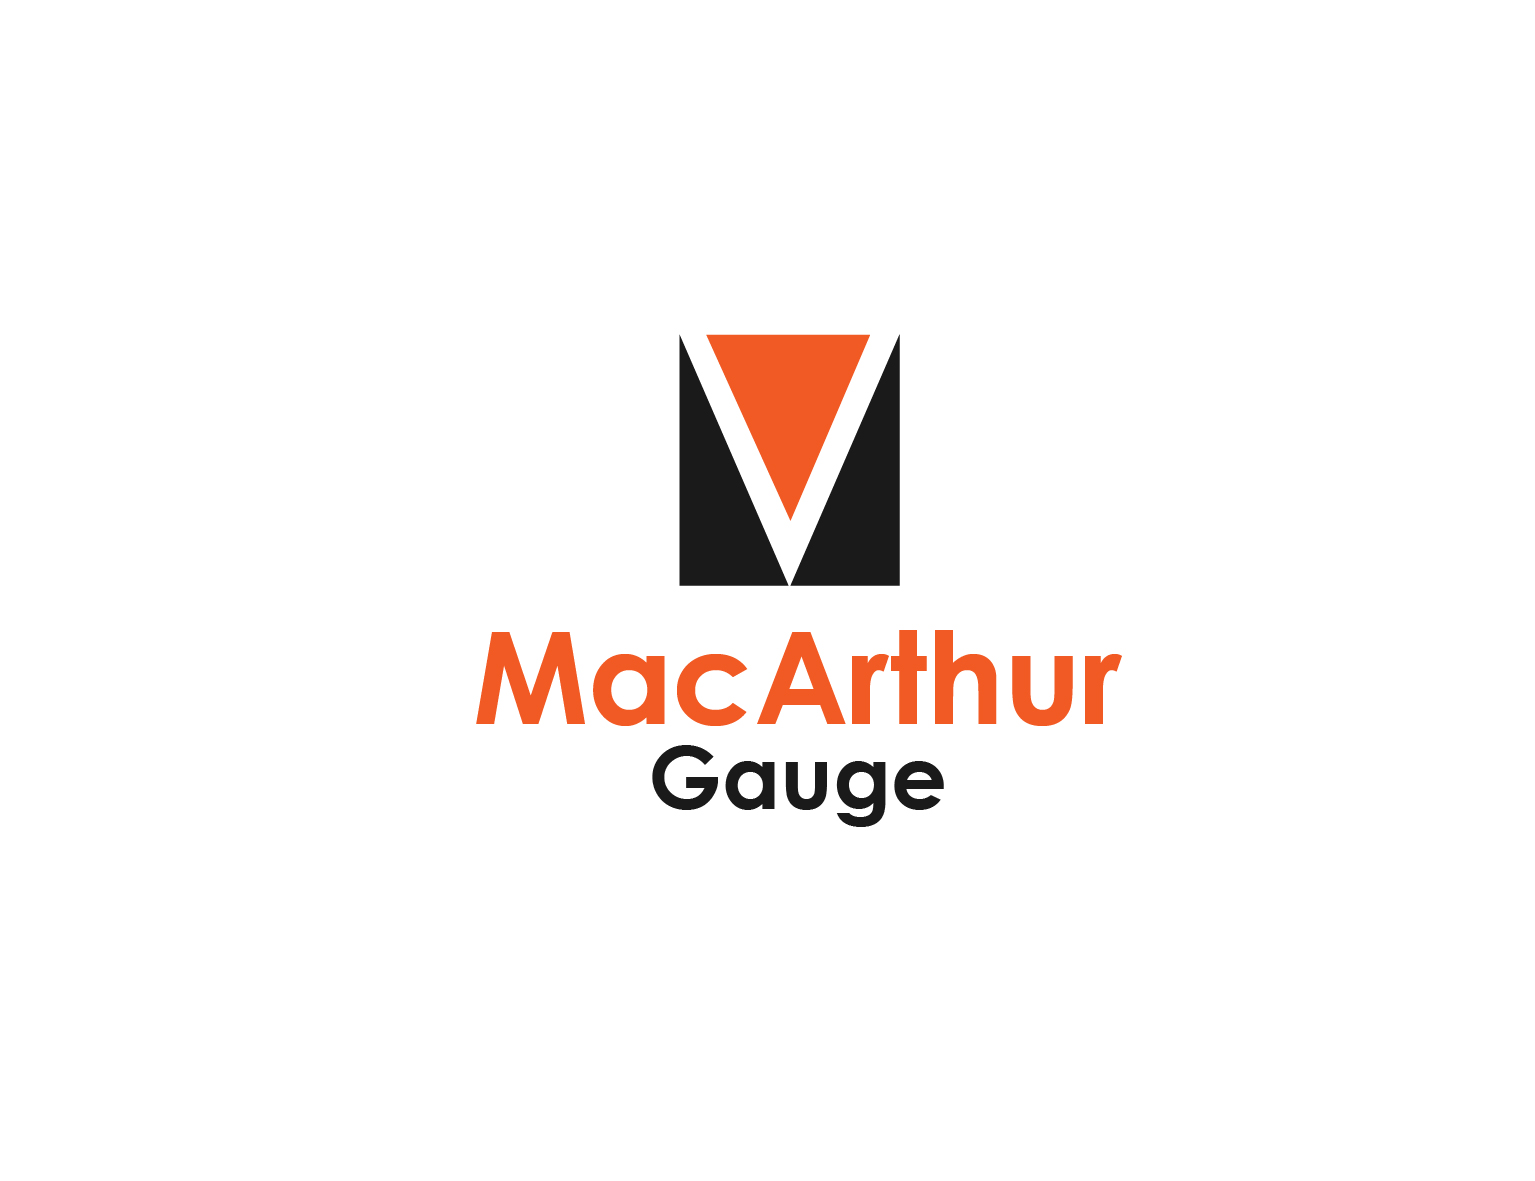 Logo Design by 3draw - Entry No. 167 in the Logo Design Contest Fun Logo Design for MacArthur Gauge.